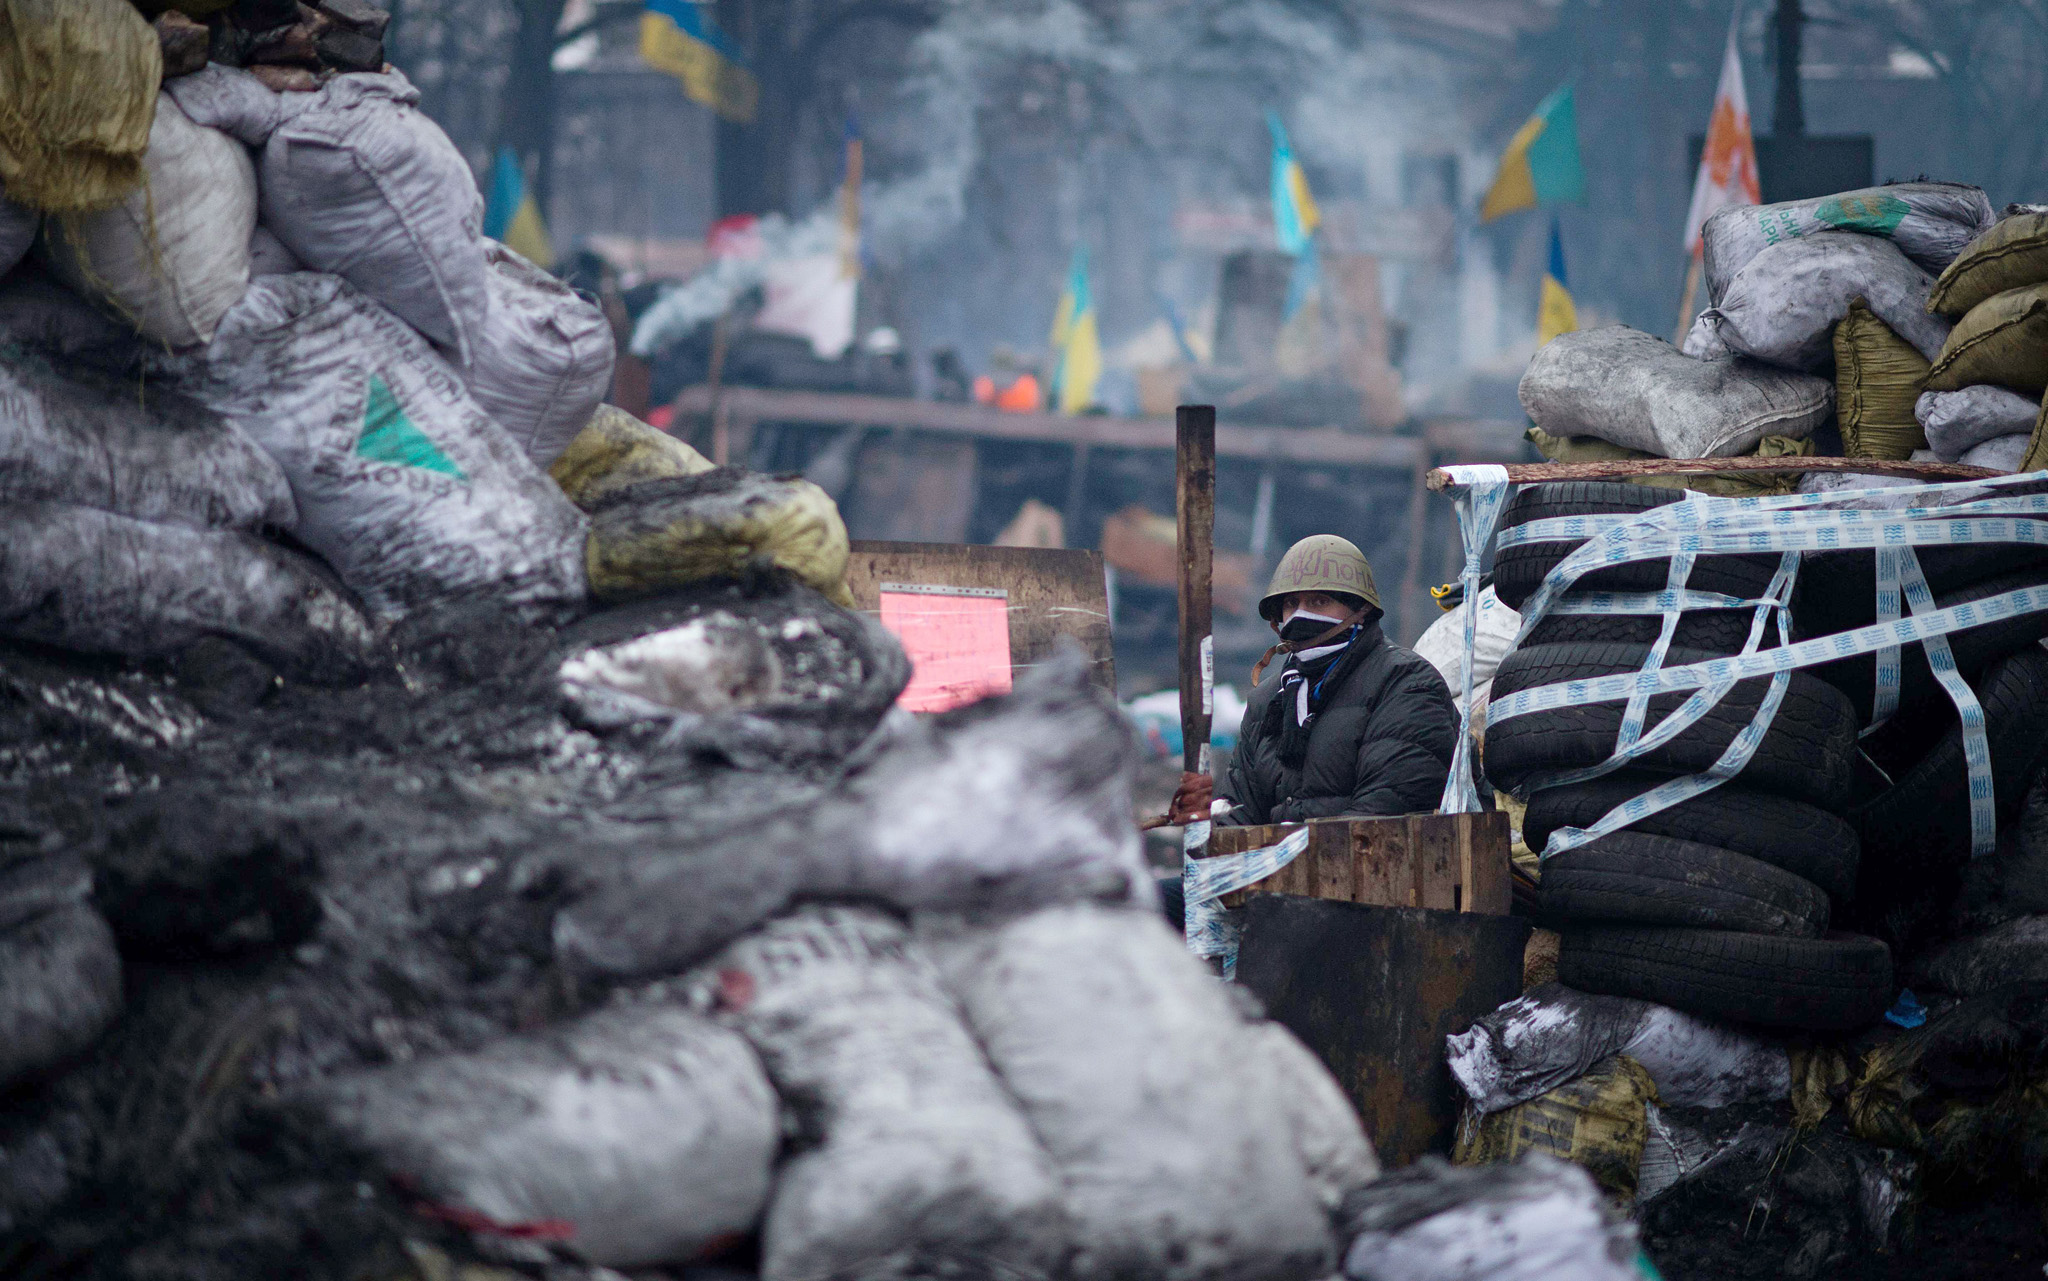 TOPSHOTS An anti-government protester st...TOPSHOTS An anti-government protester stands on a barricade in Kiev on February 7, 2014. Ukraine's unrest erupted in November 2013 after President Viktor Yanukovych rejected an association agreement with the European Union in favour of closer ties with Moscow, and the turmoil has now become an all-out movement to oust him. AFP PHOTO MARTIN BUREAUMARTIN BUREAU/AFP/Getty Images